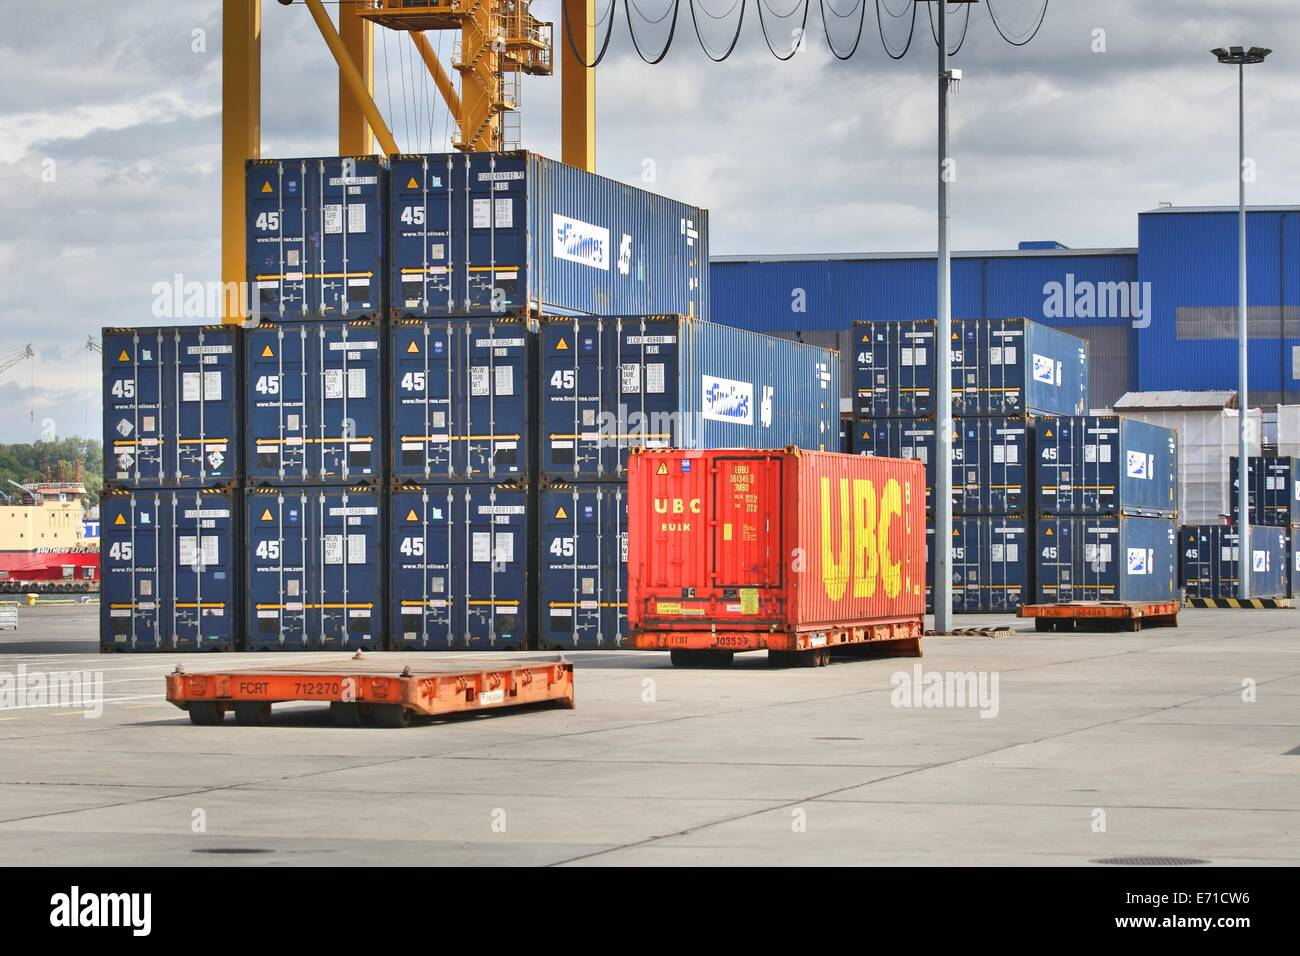 Gdynia, Poland 18.08.2014  Sea containers in the Port of Gdynia. - Stock Image